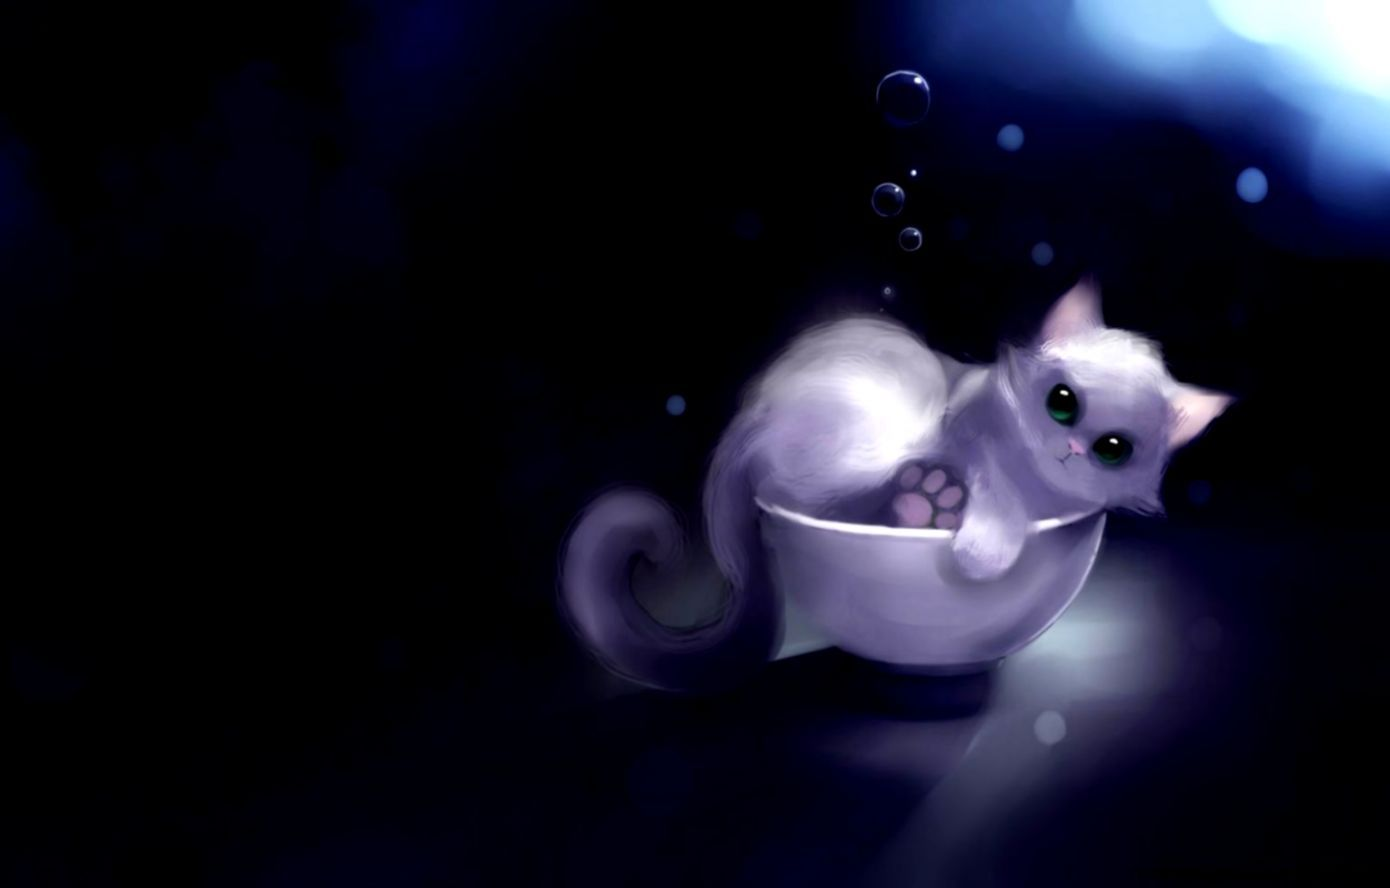 Cute Anime Cat Posted By Samantha Thompson